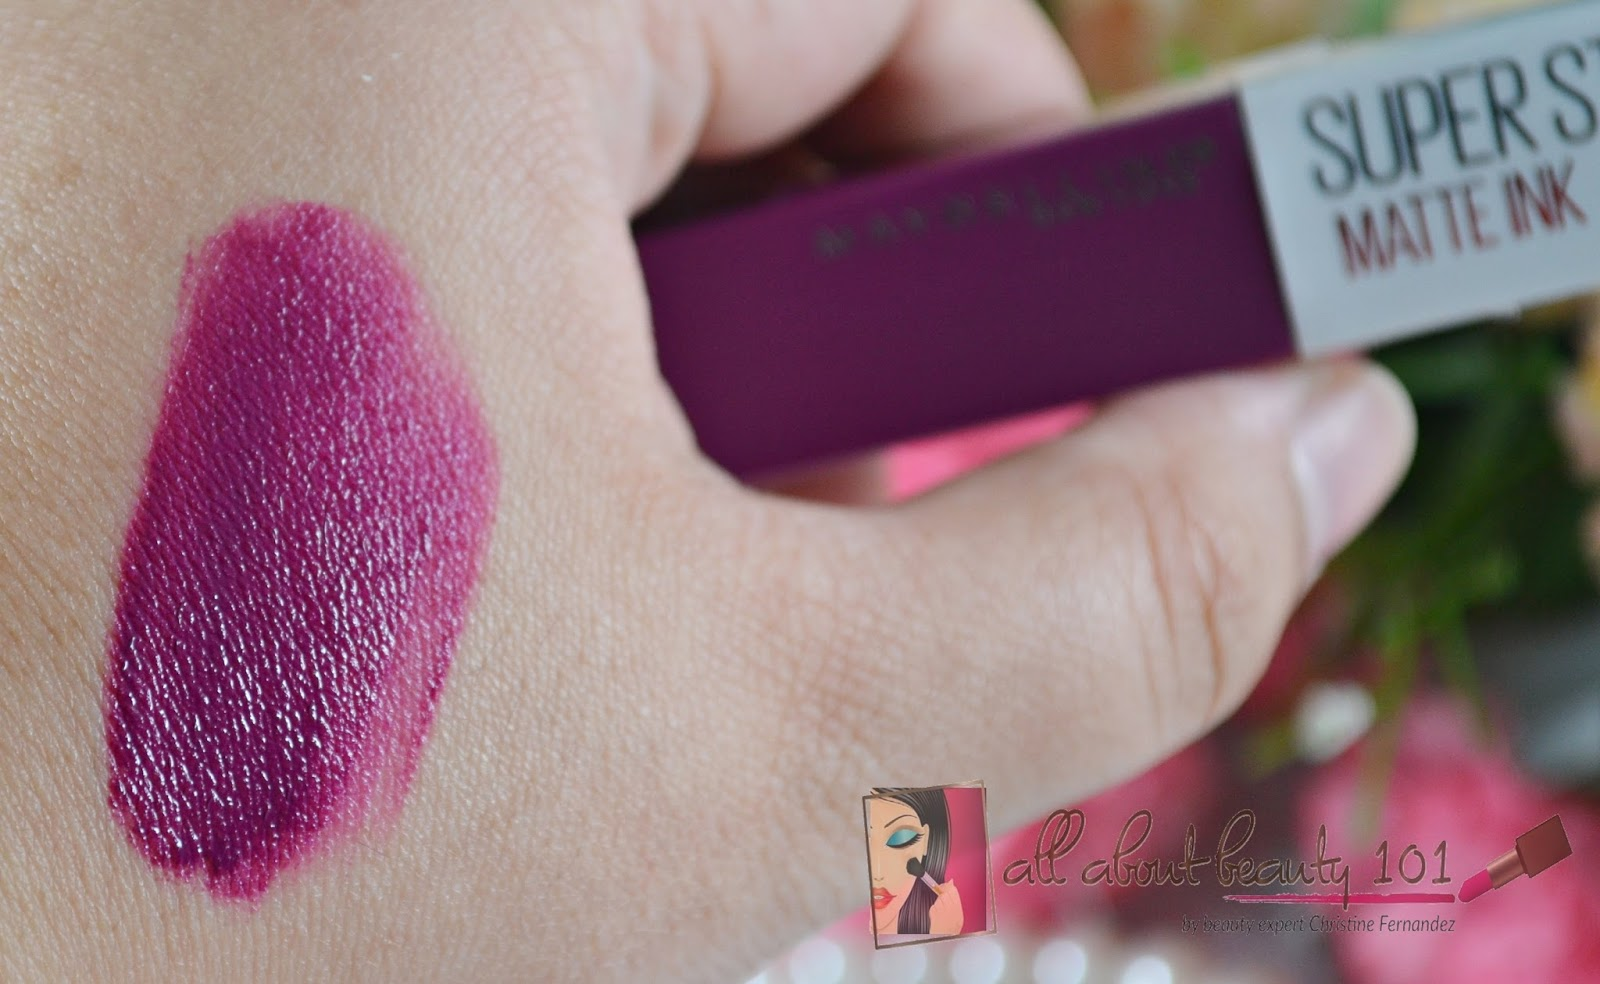 Maybelline Super Stay Matte Ink In Believer All About Beauty 101 Swatch